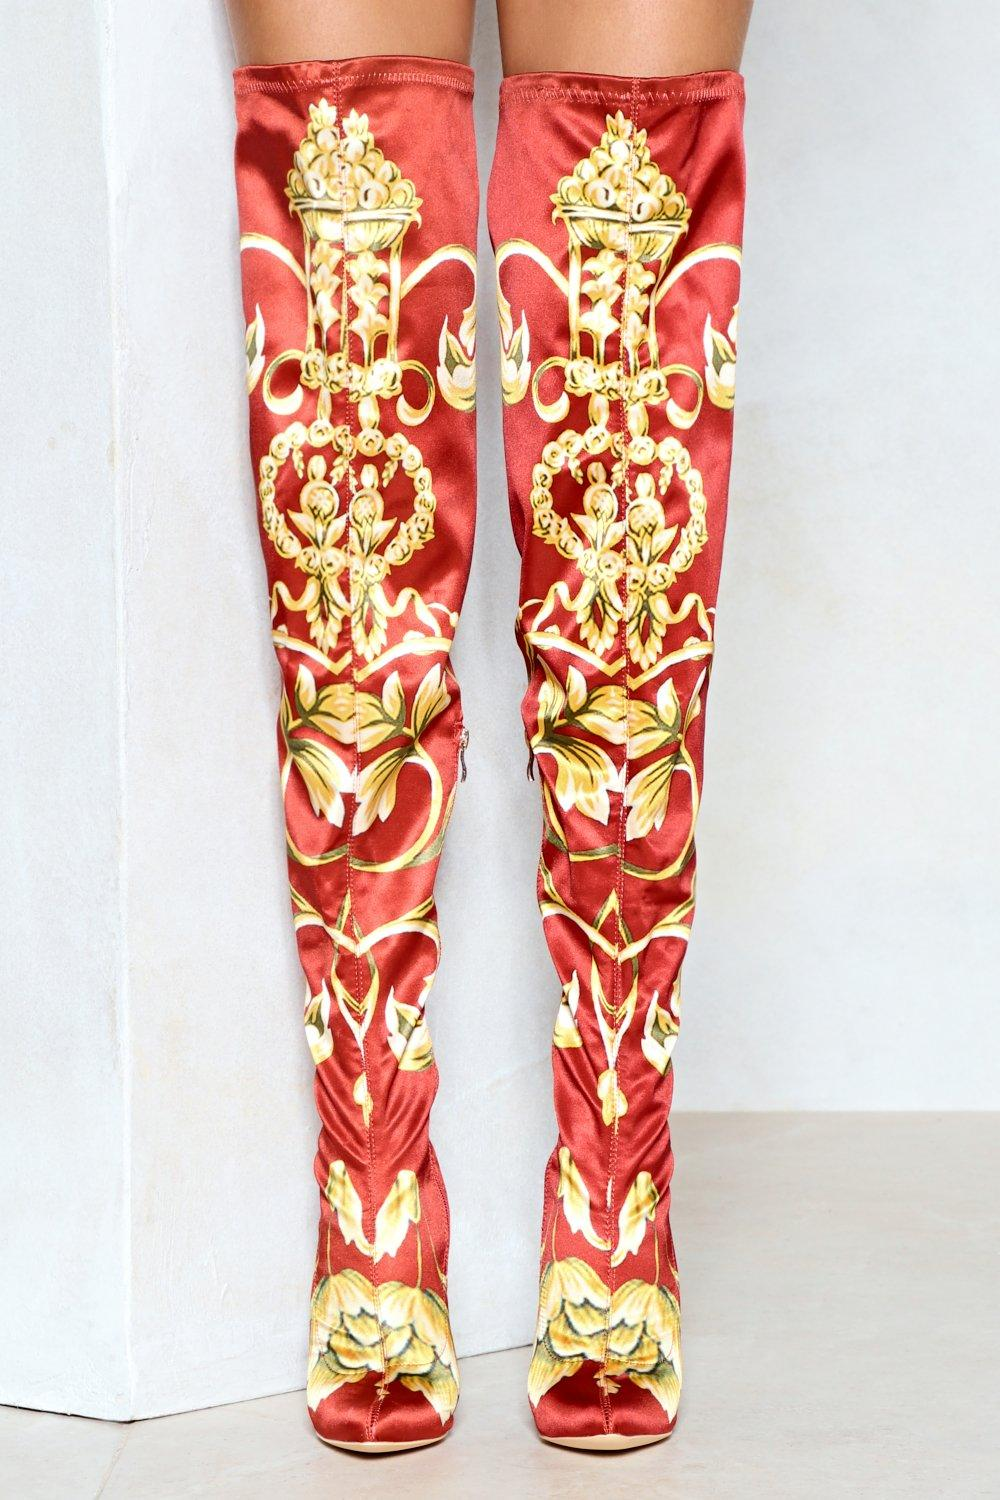 de9a3599f03 The Center of Attention Thigh-High Boot | Shop Clothes at Nasty Gal!